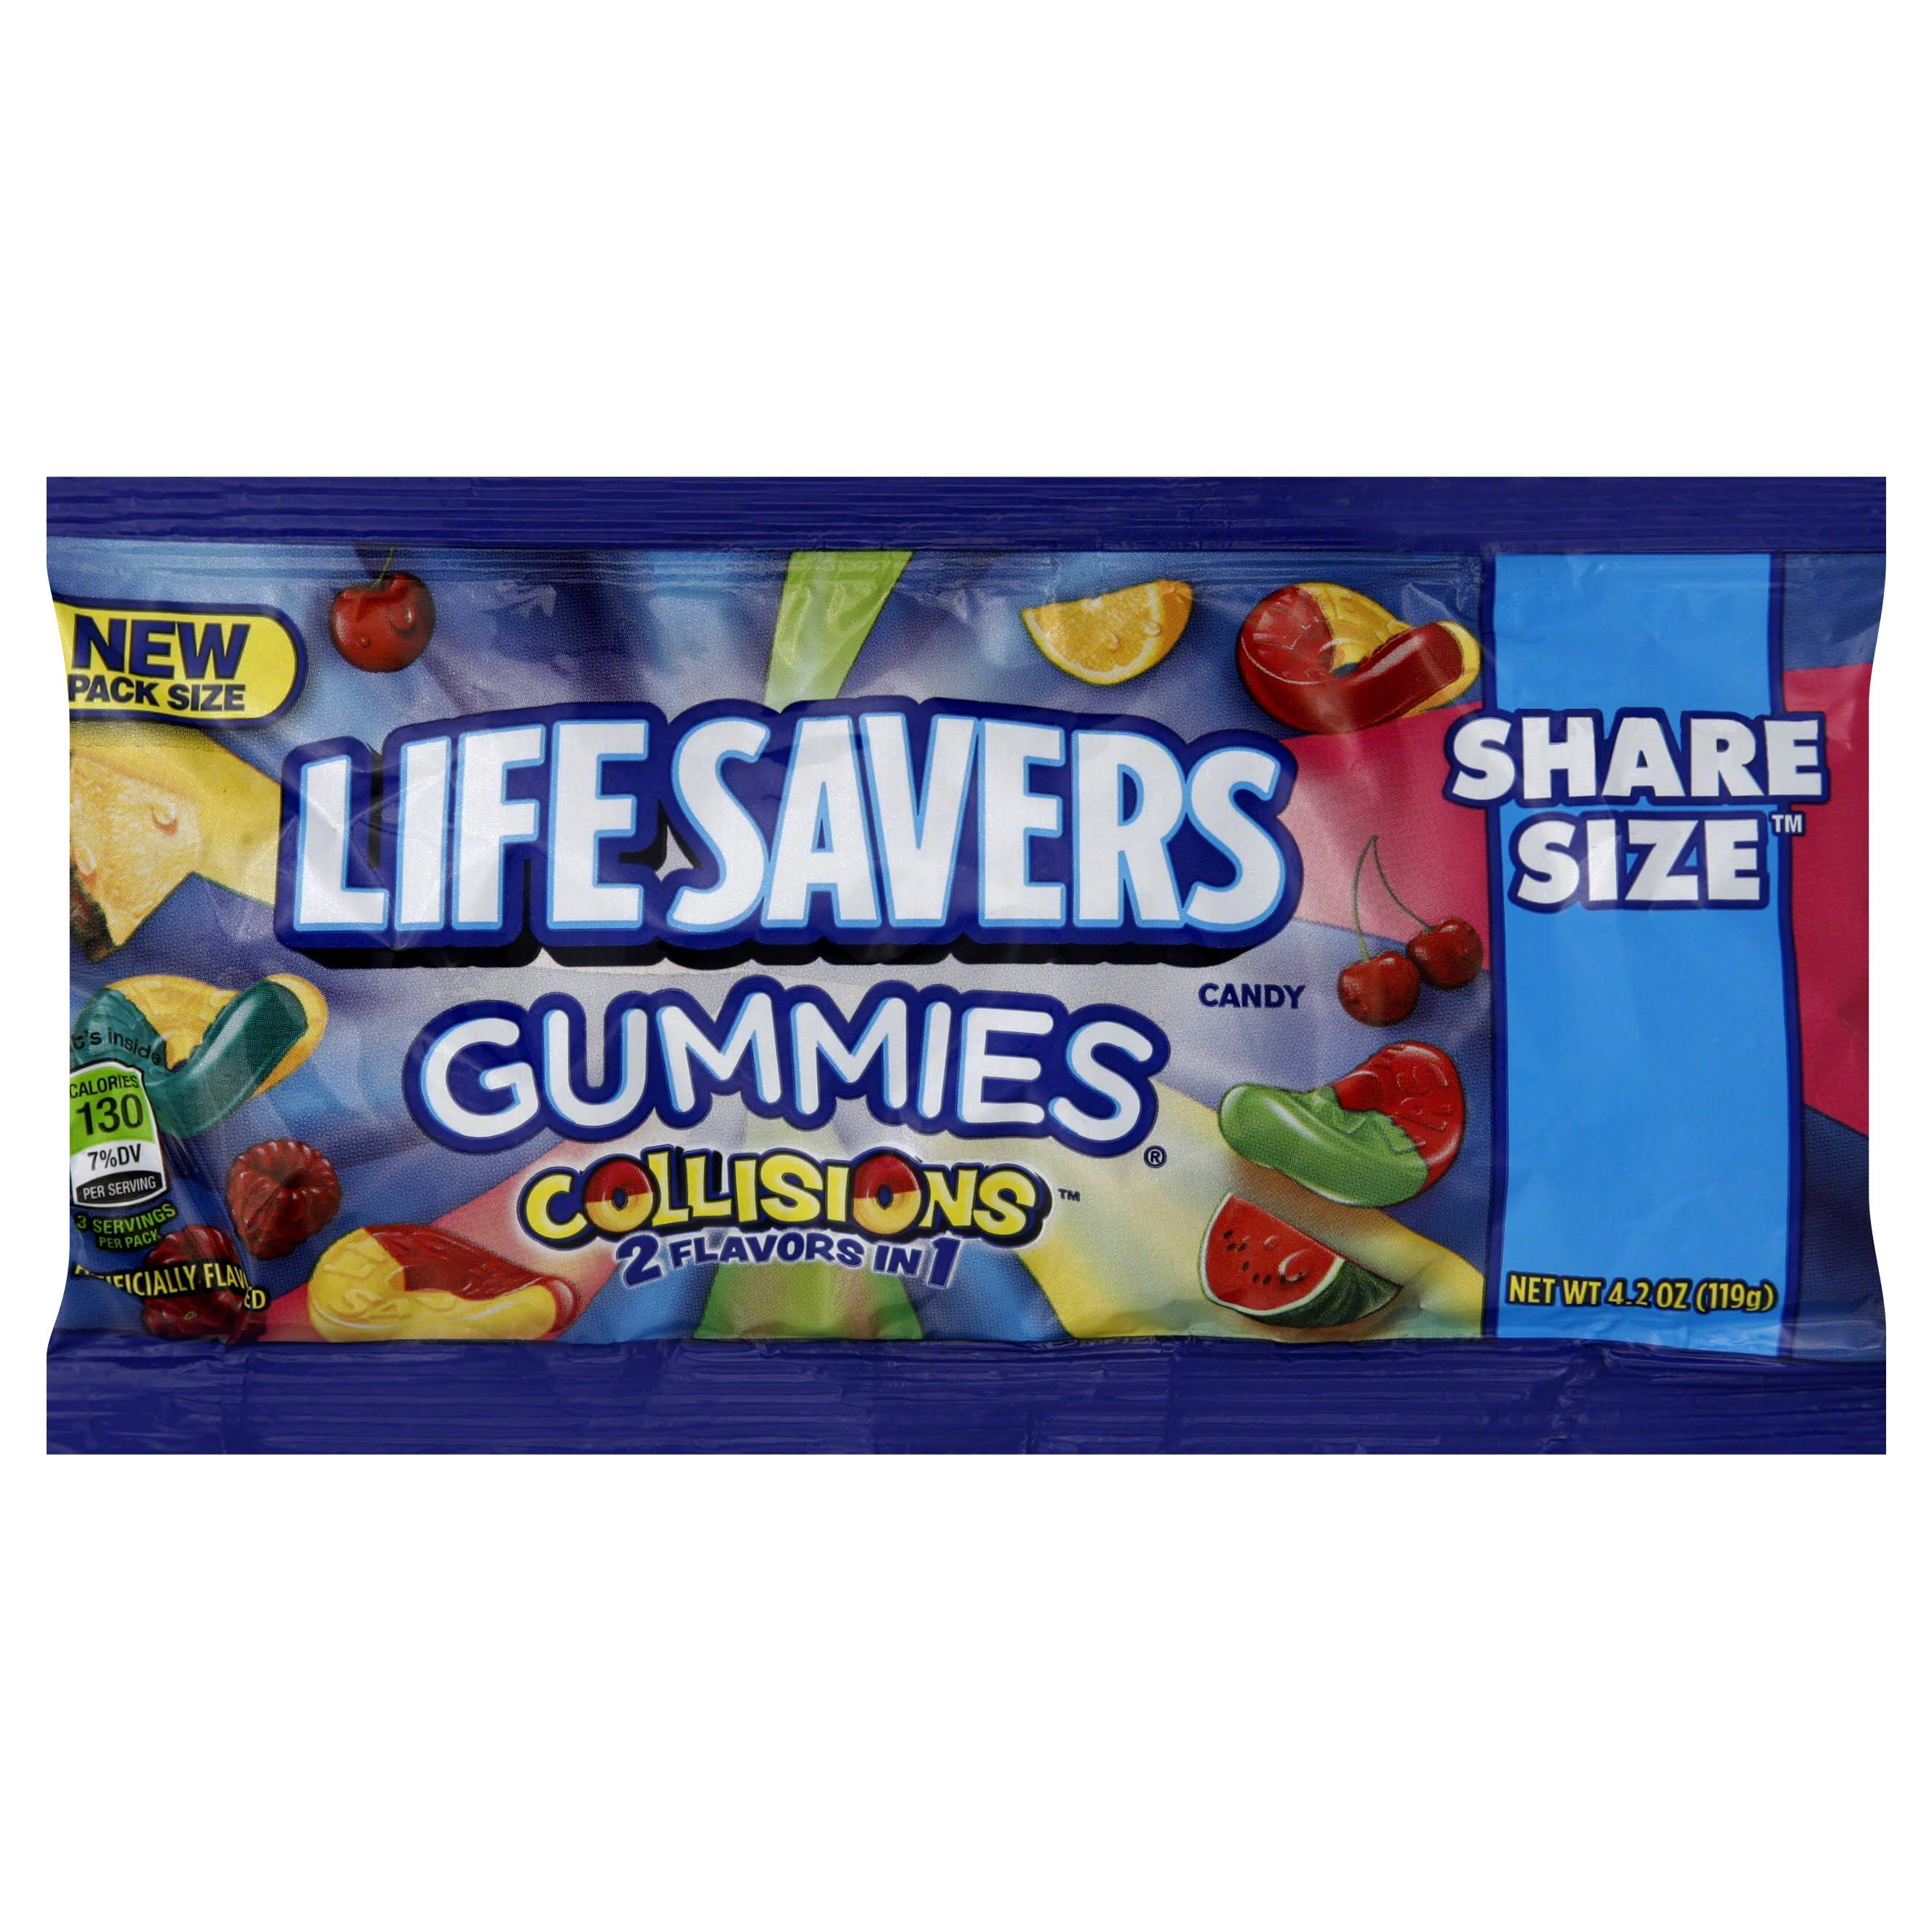 Lifesavers Collisions Gummies Candy - 4.2oz